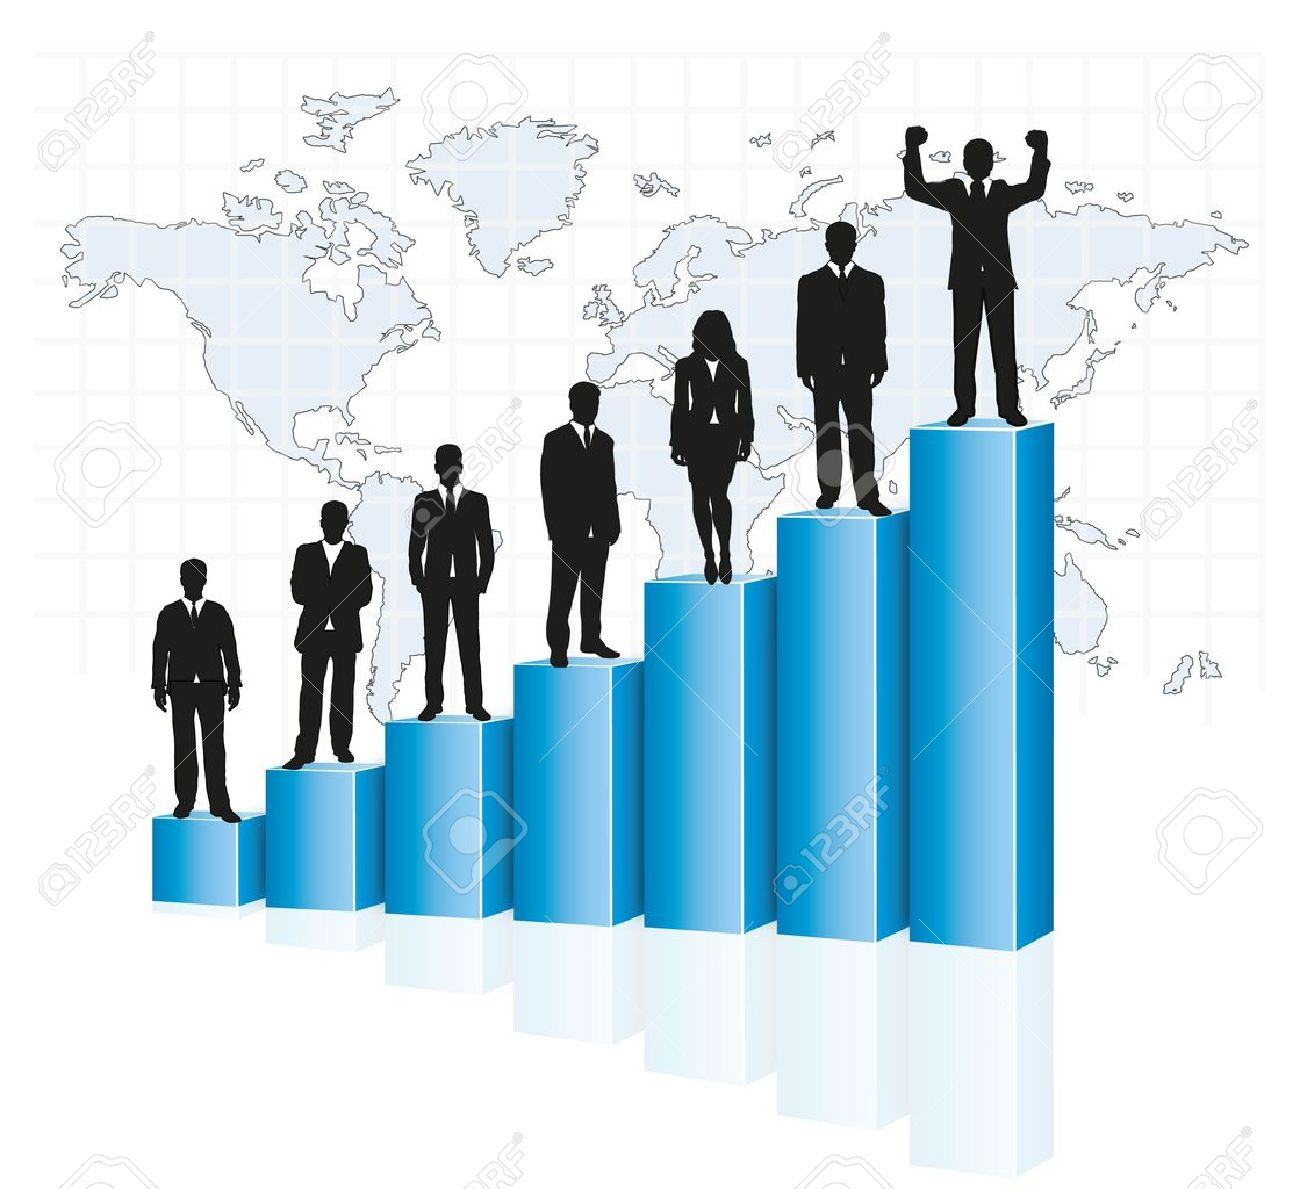 career progression stock photos images royalty career career progression ladder and hierachy